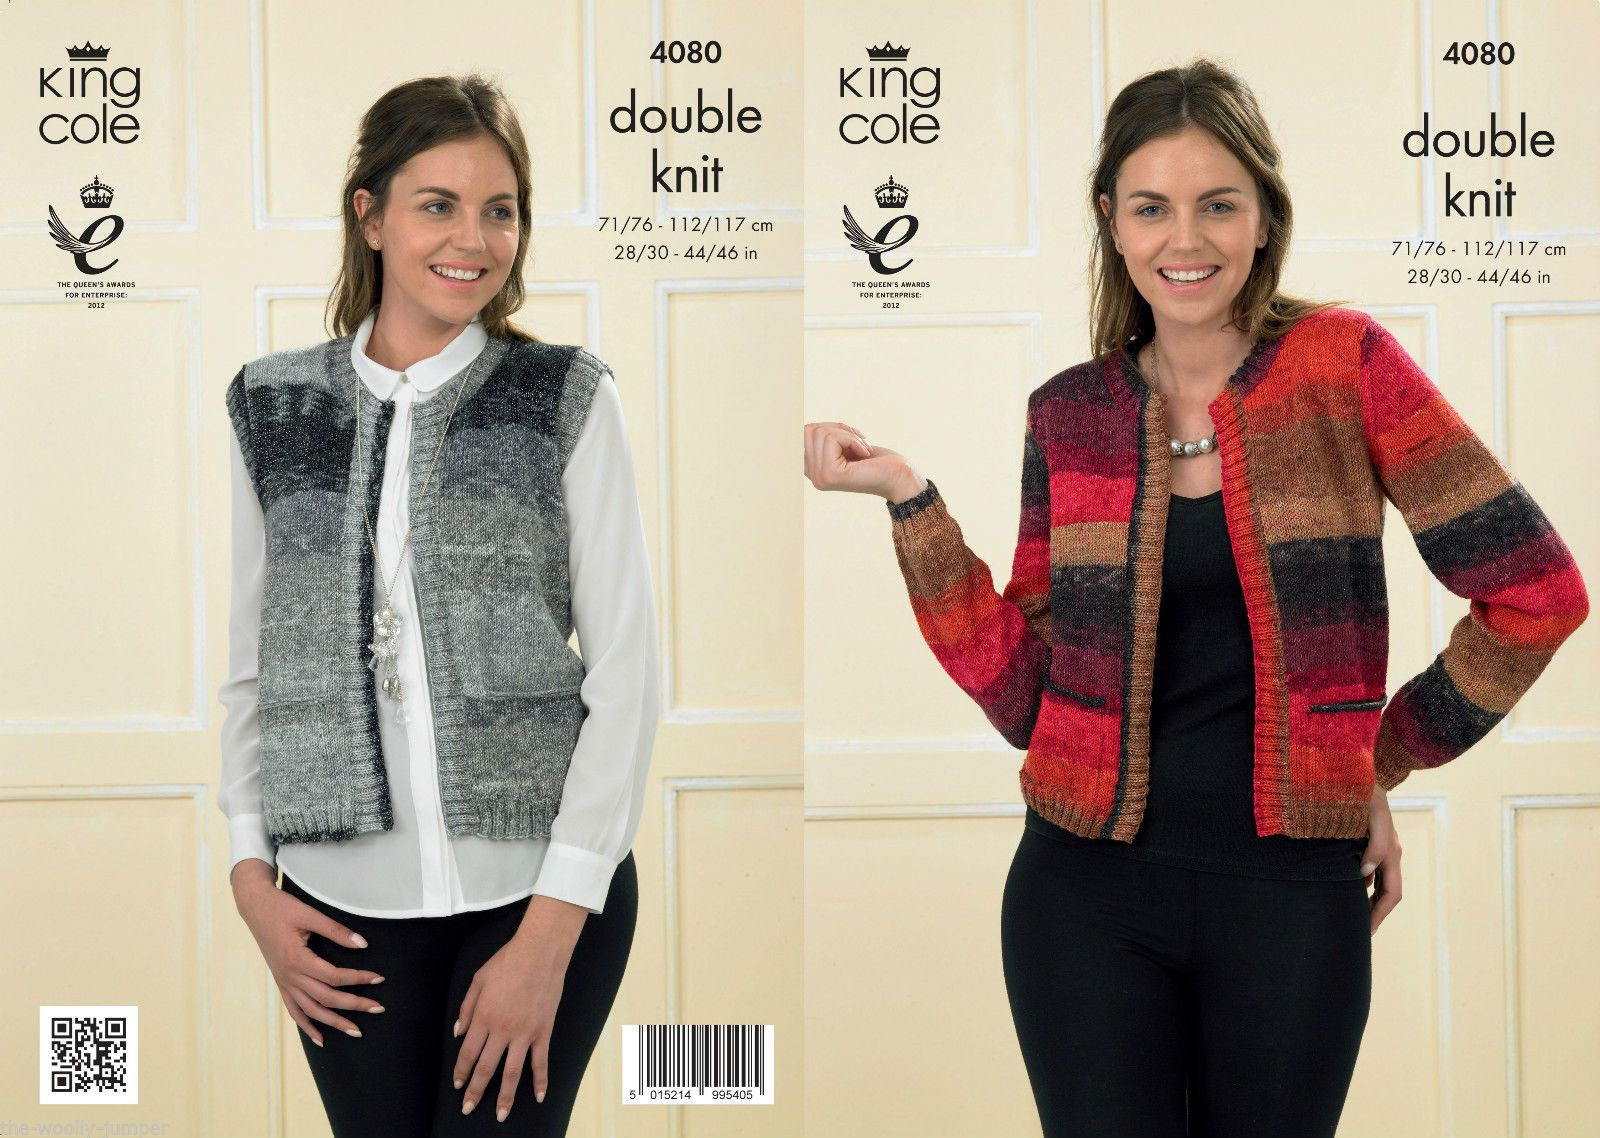 49e876d759aa 4080 - KING COLE SHINE DK CARDIGAN   WAISTCOAT KNITTING PATTERN - TO FIT  CHEST SIZE 28 TO 46